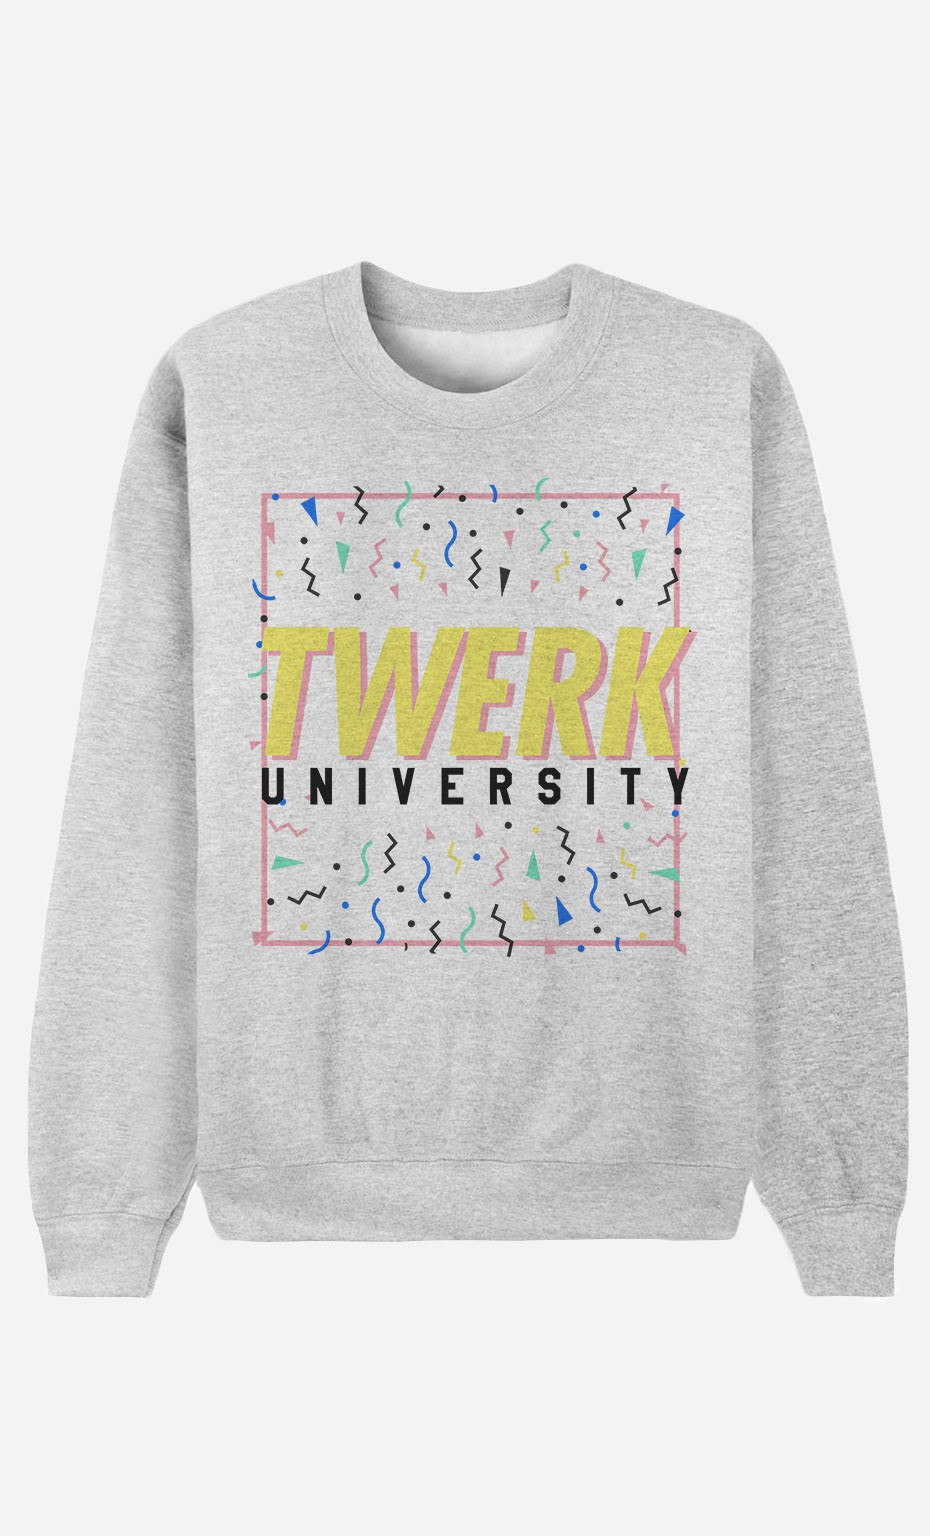 Sweat Homme Twerk University